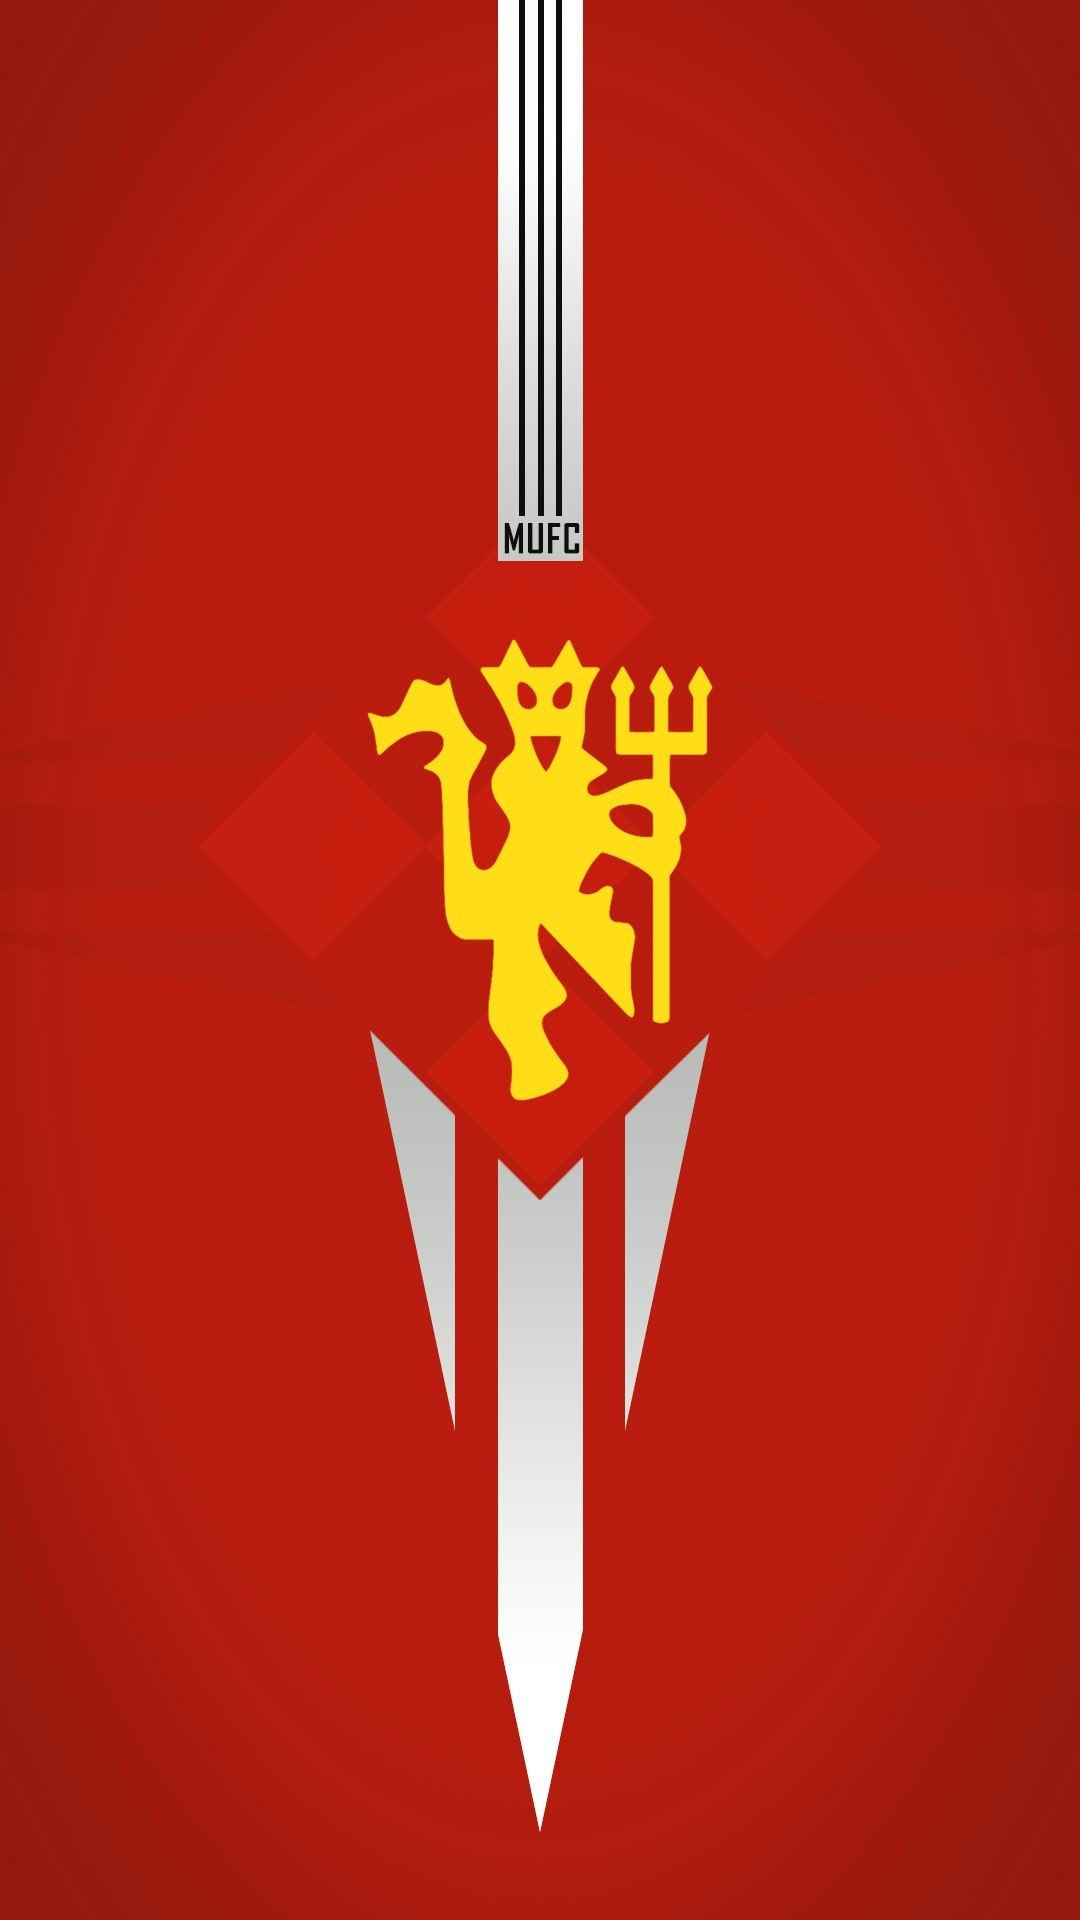 Manchester United Iphone 11 Wallpaper Hd Football